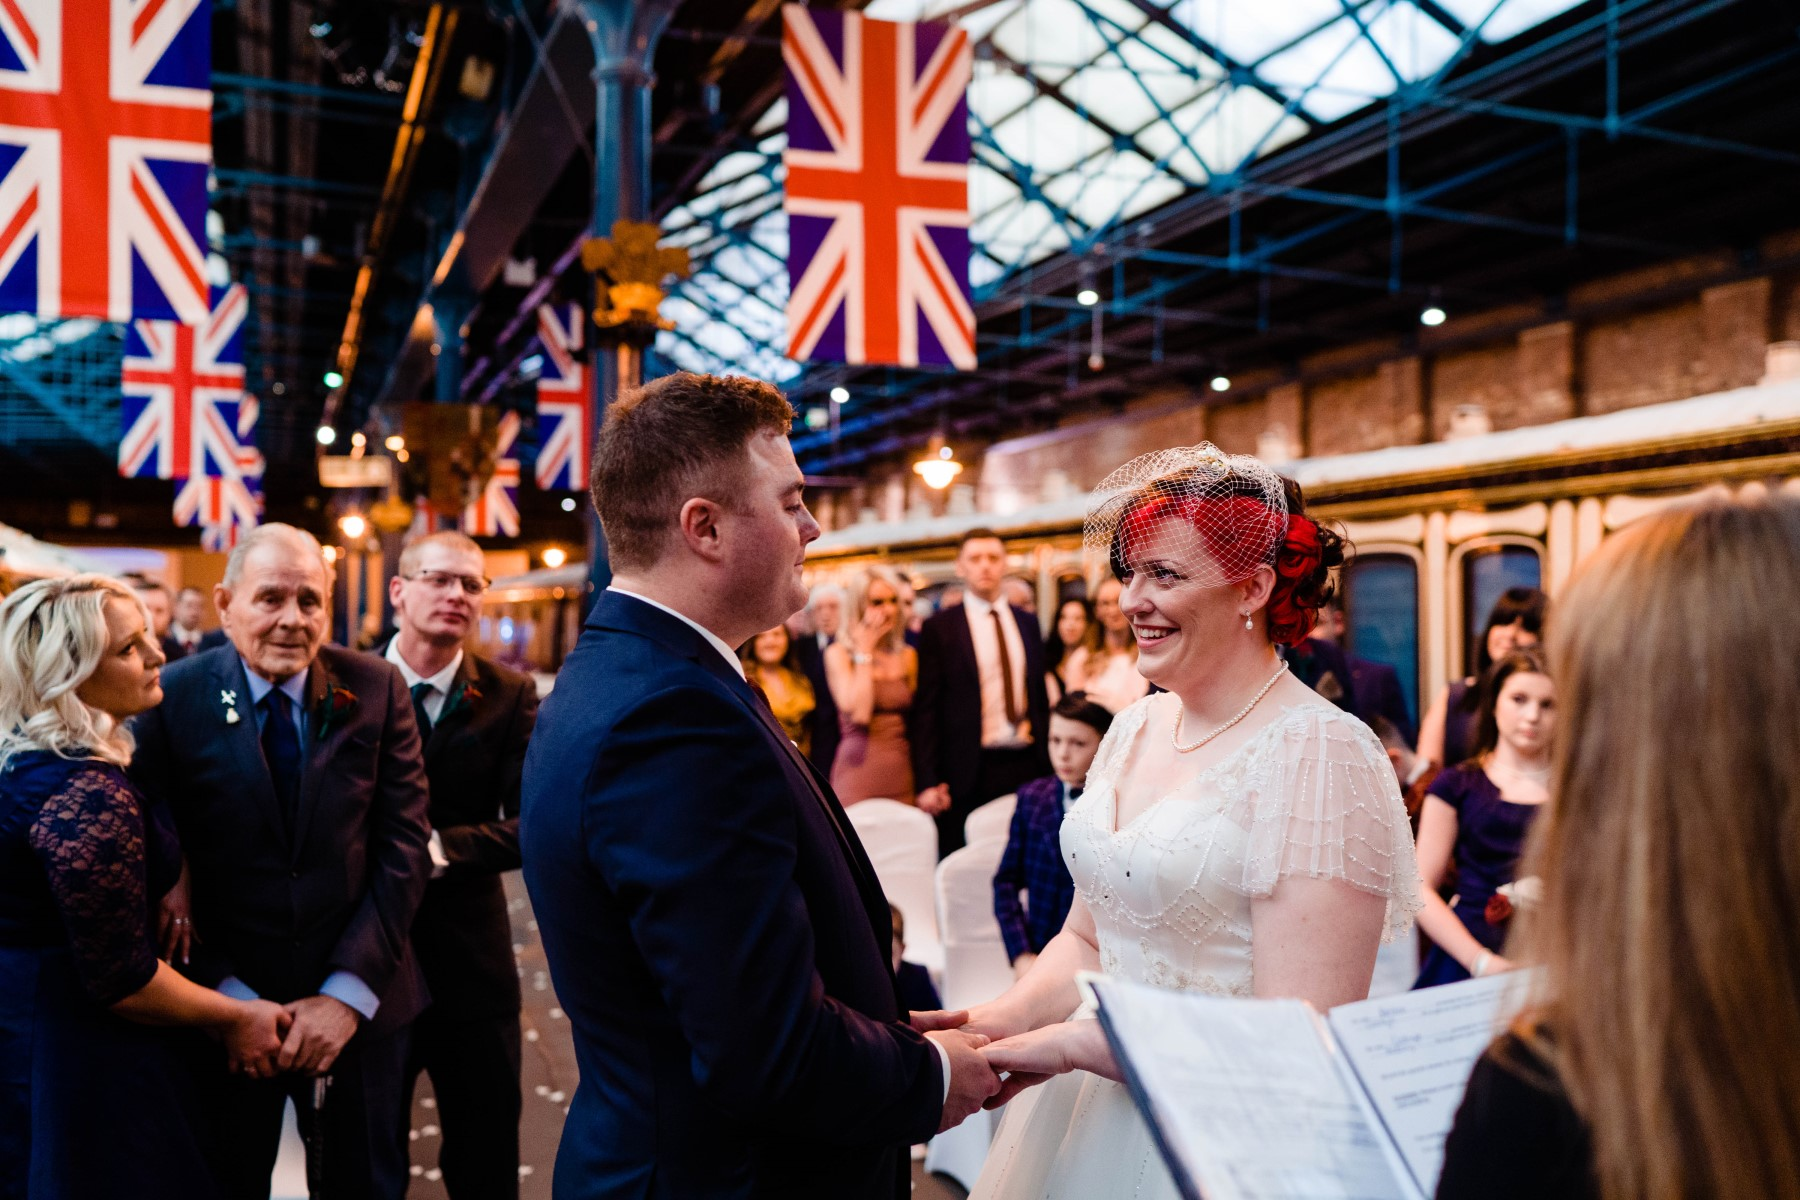 Industrial Railway Wedding- Vicki Clayson Photography- Unconventional Wedding- Unique Wedding Venue- patriotic wedding ceremony